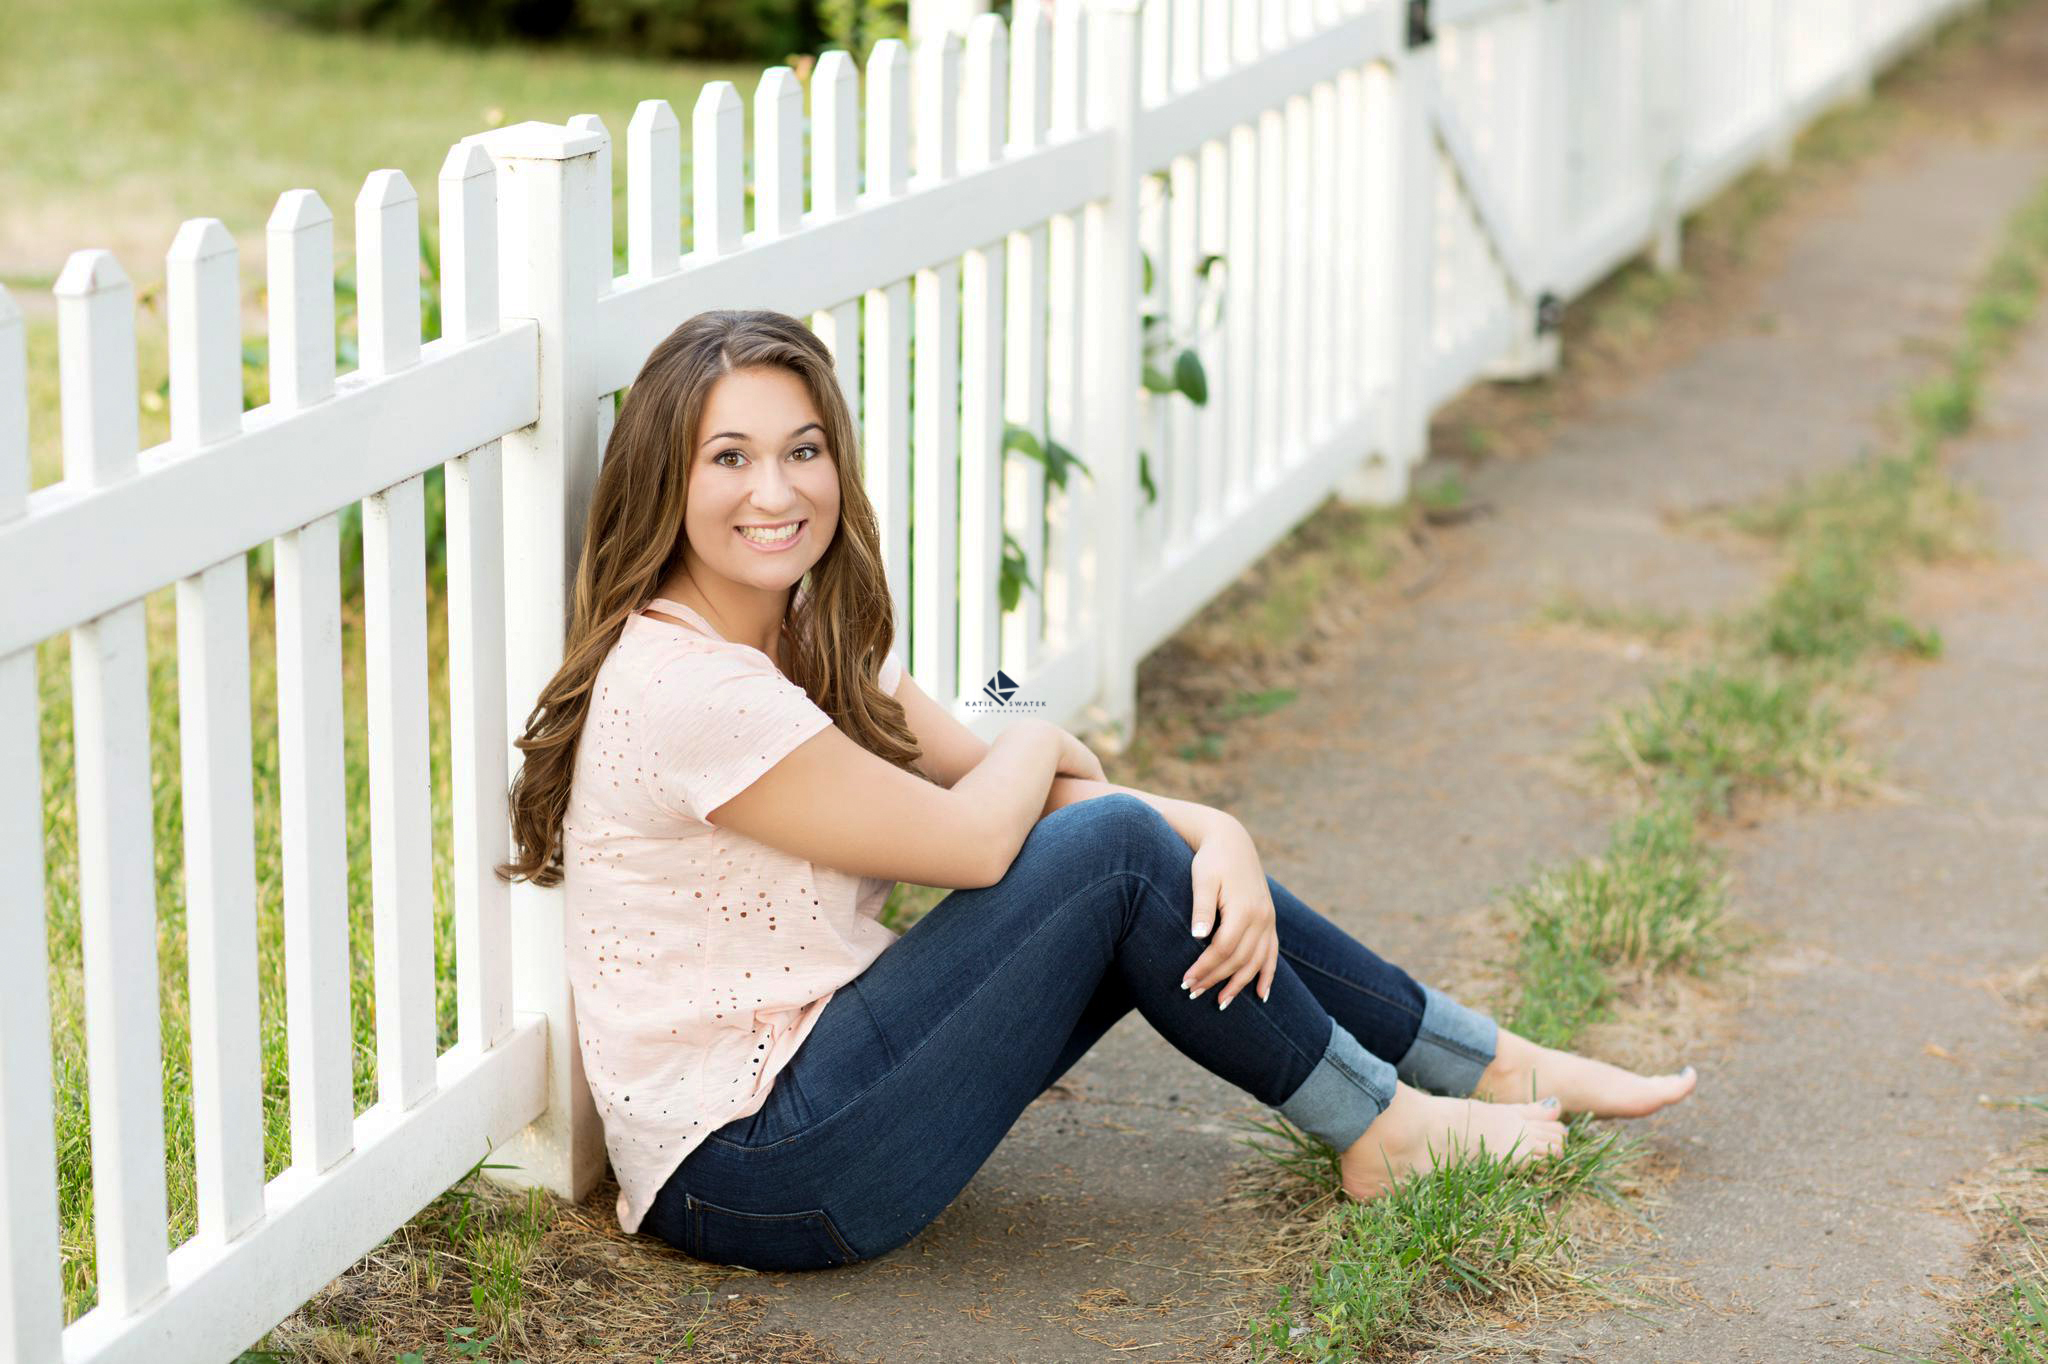 barefoot, brunette senior girl in a pink top and dark denim jeans posing next to a white picket fence